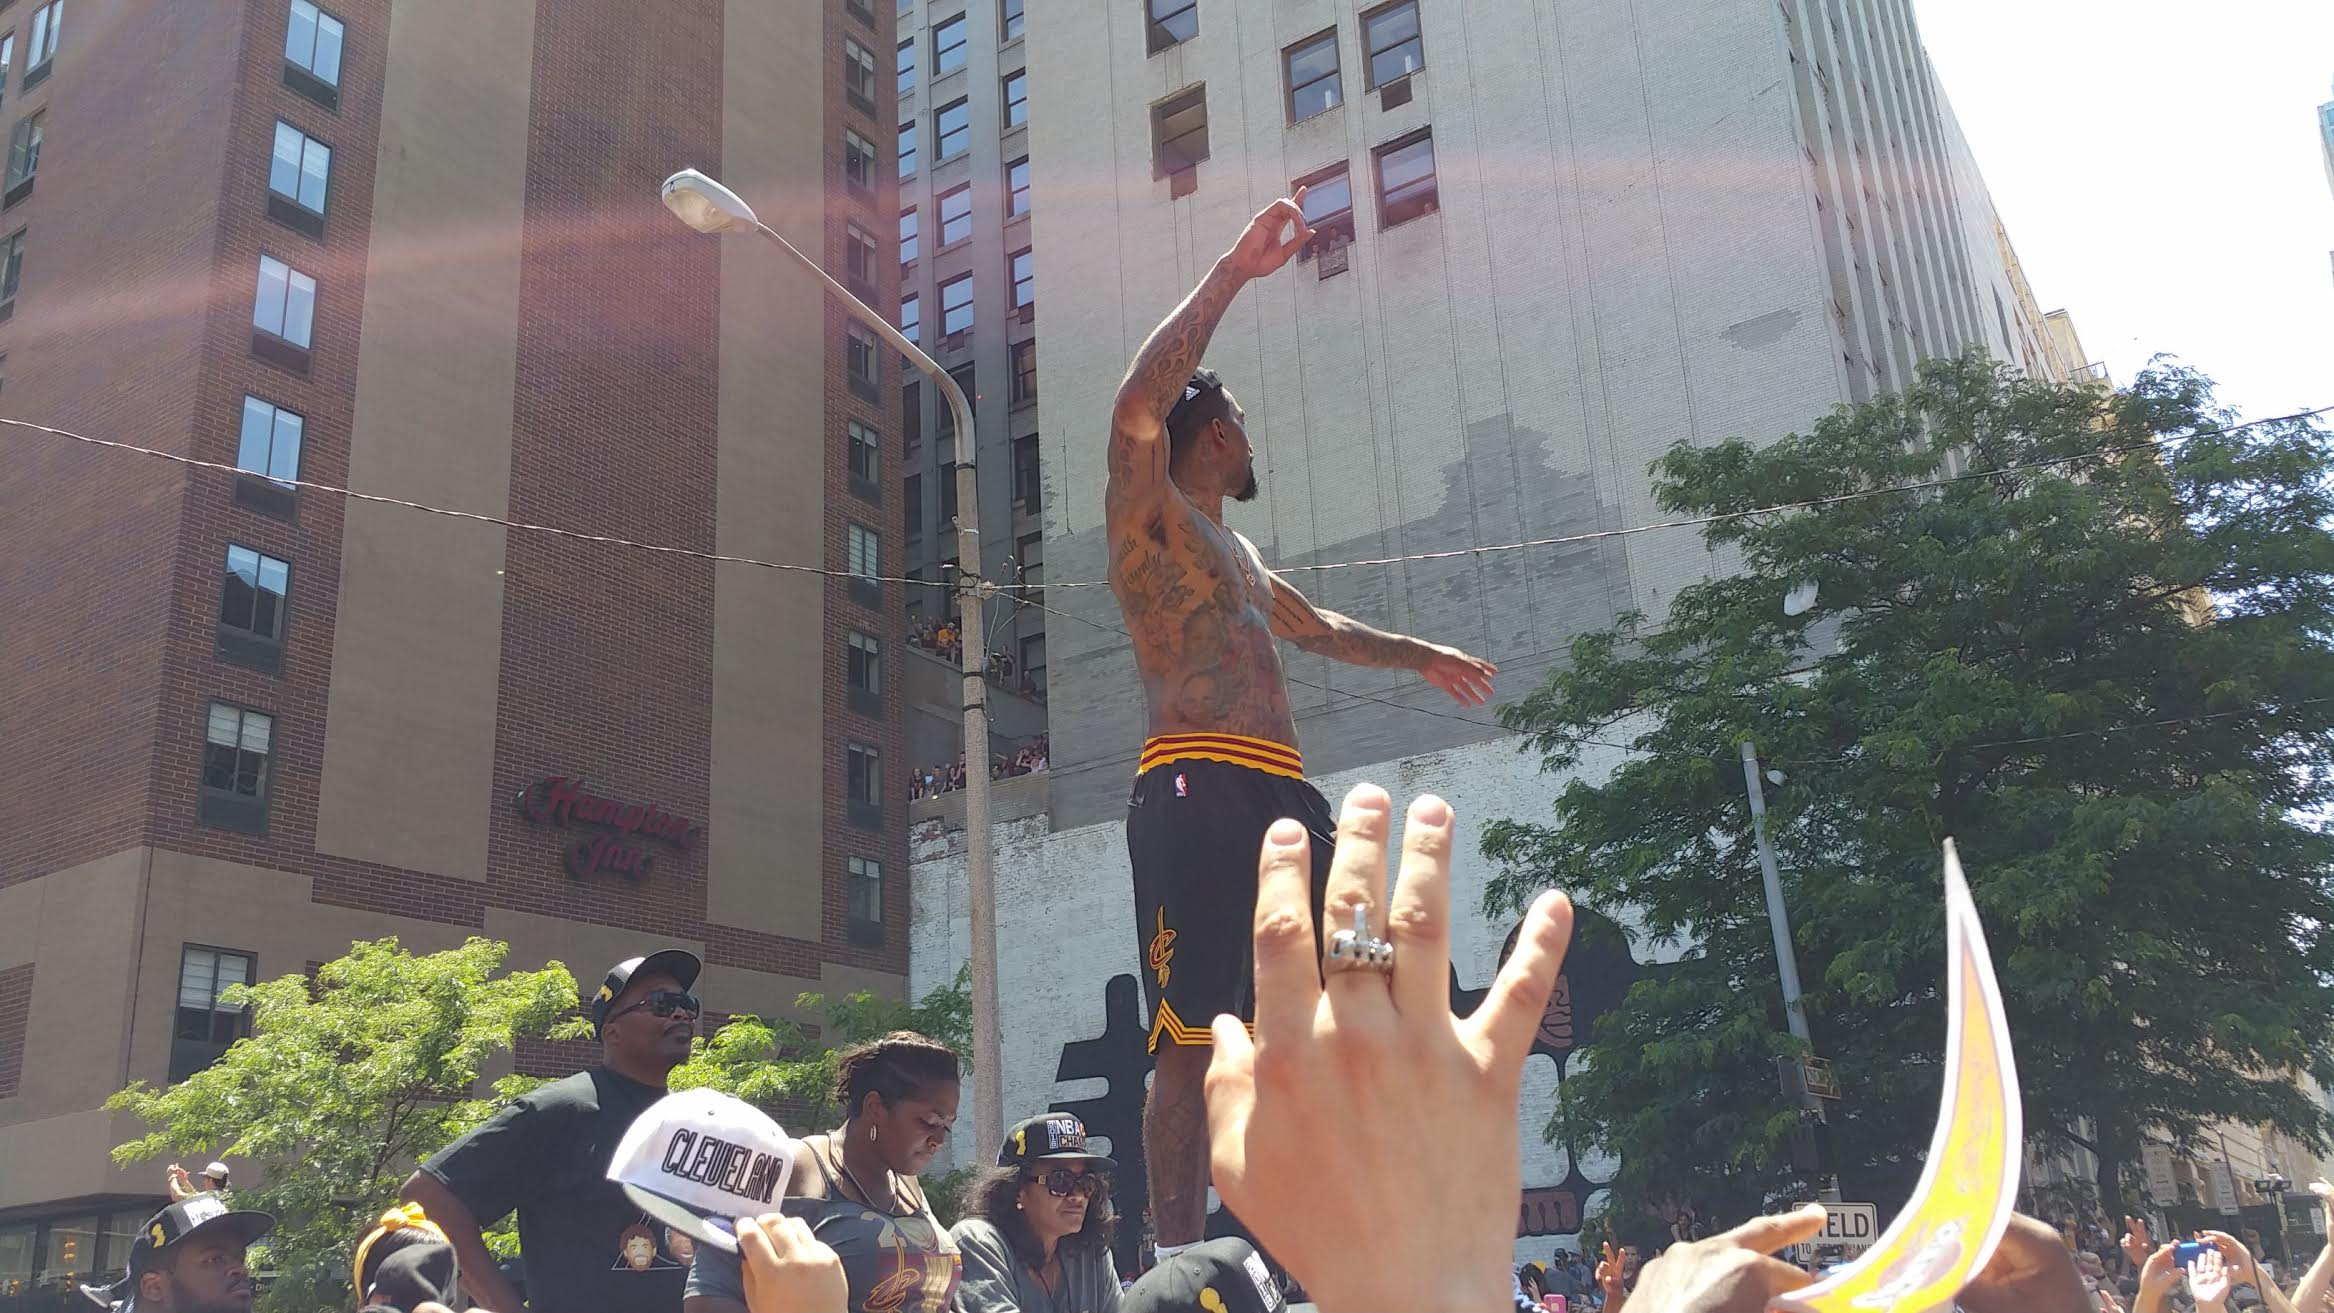 J.R. Smith waves to the fans